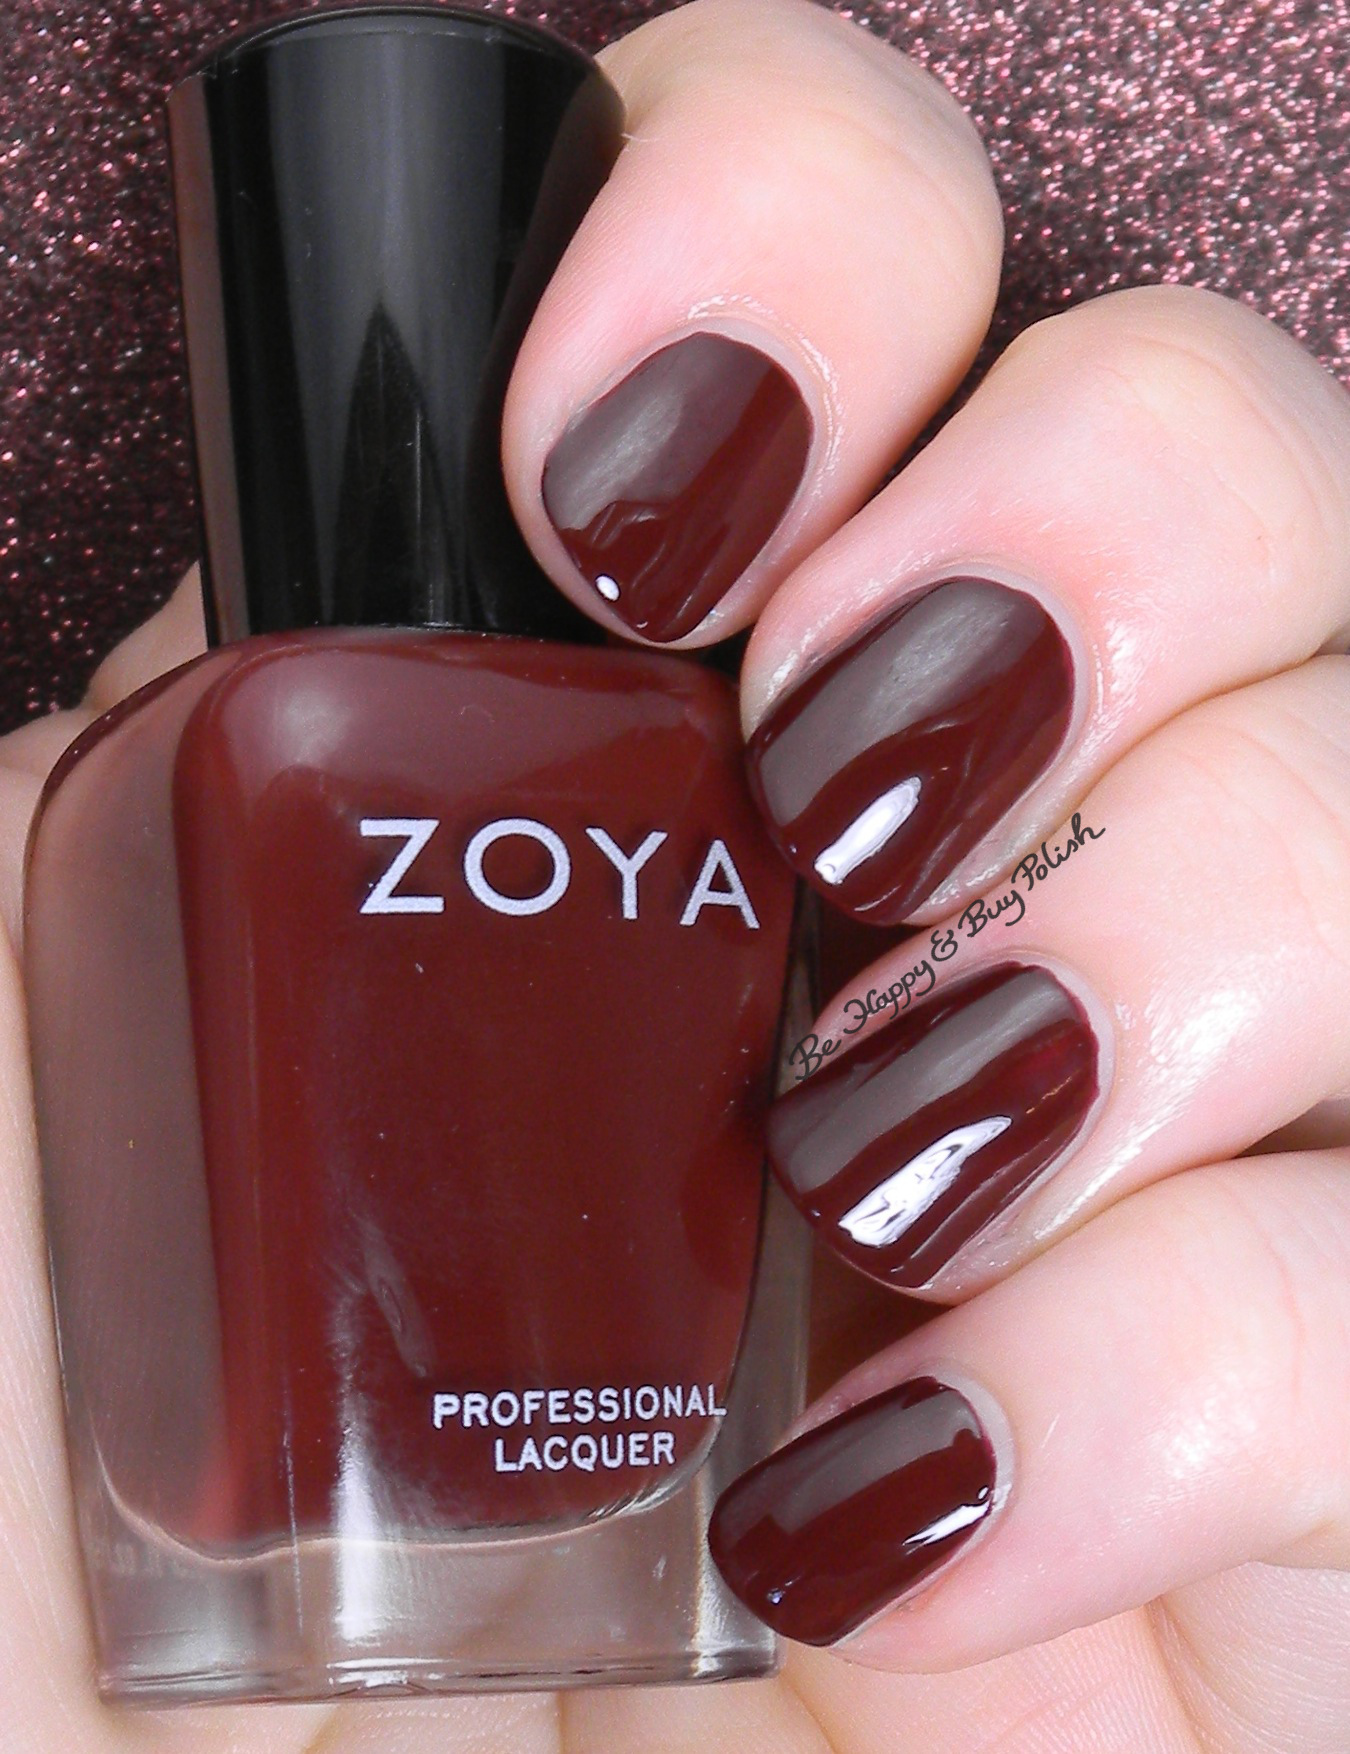 Zoya Tilda, Ling, Claire nail polish swatches | Be Happy and Buy Polish